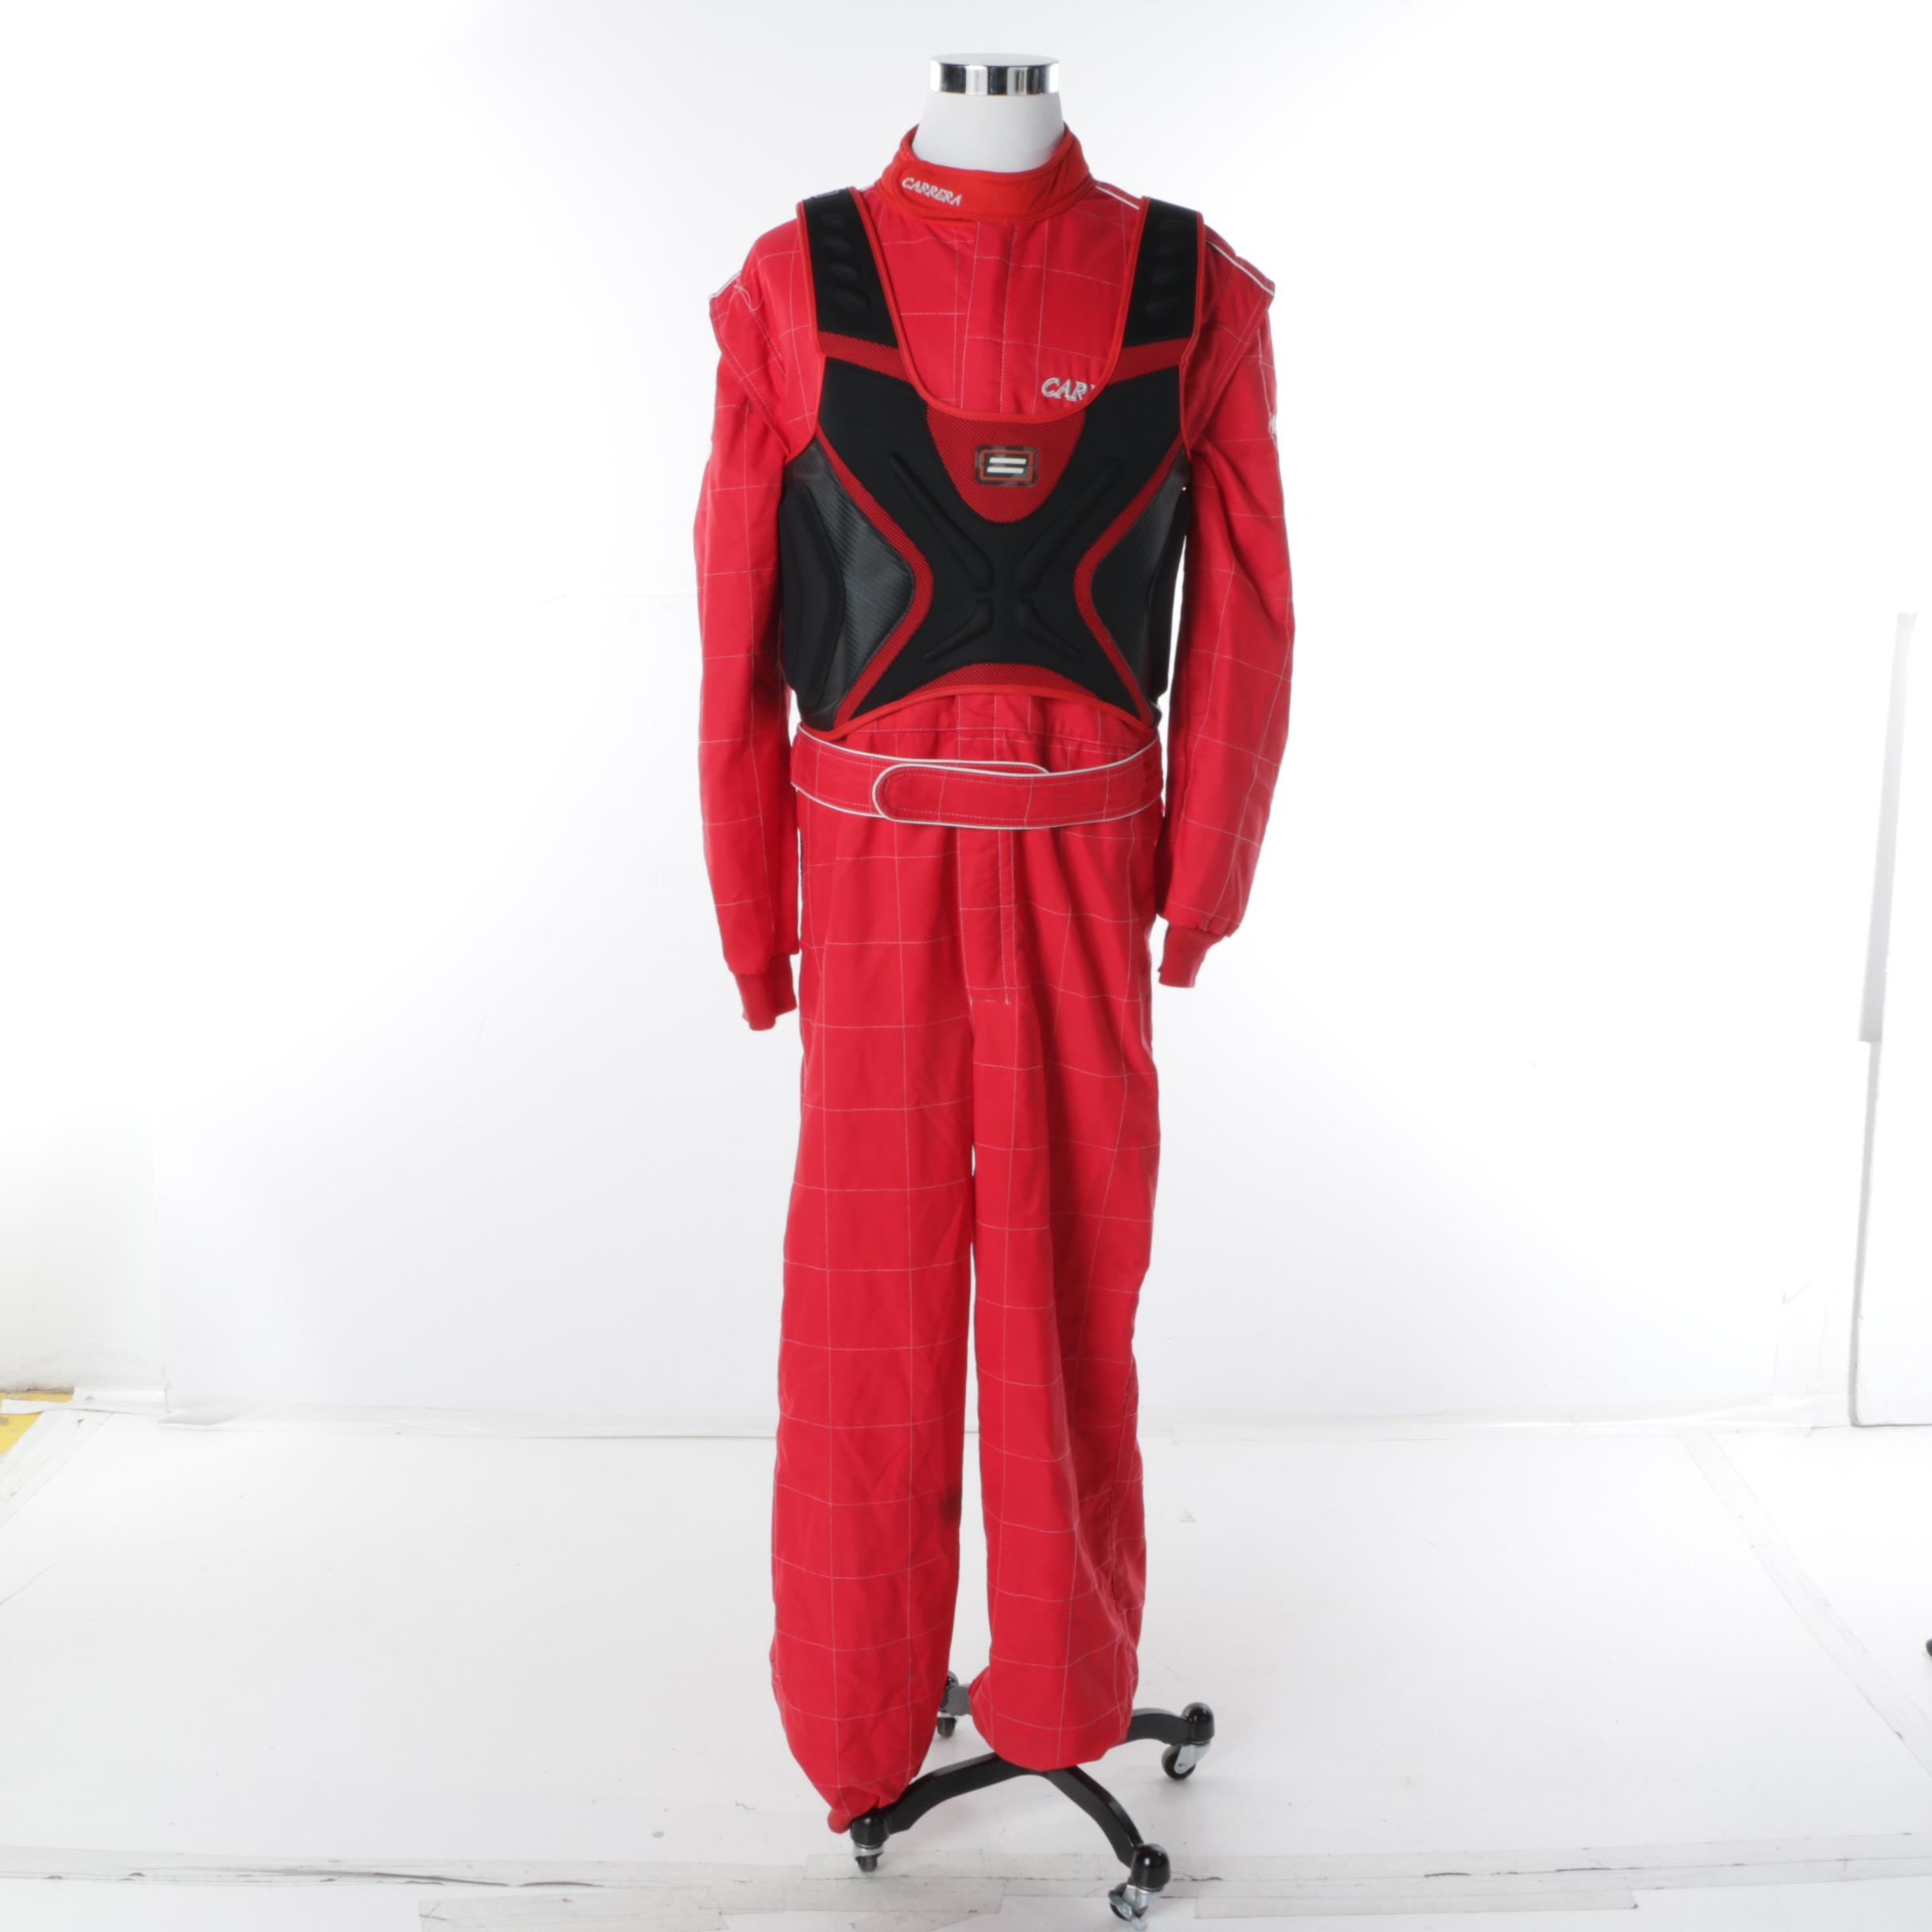 Men's Carrera Racing Suit in Red and Shift Rib Guard